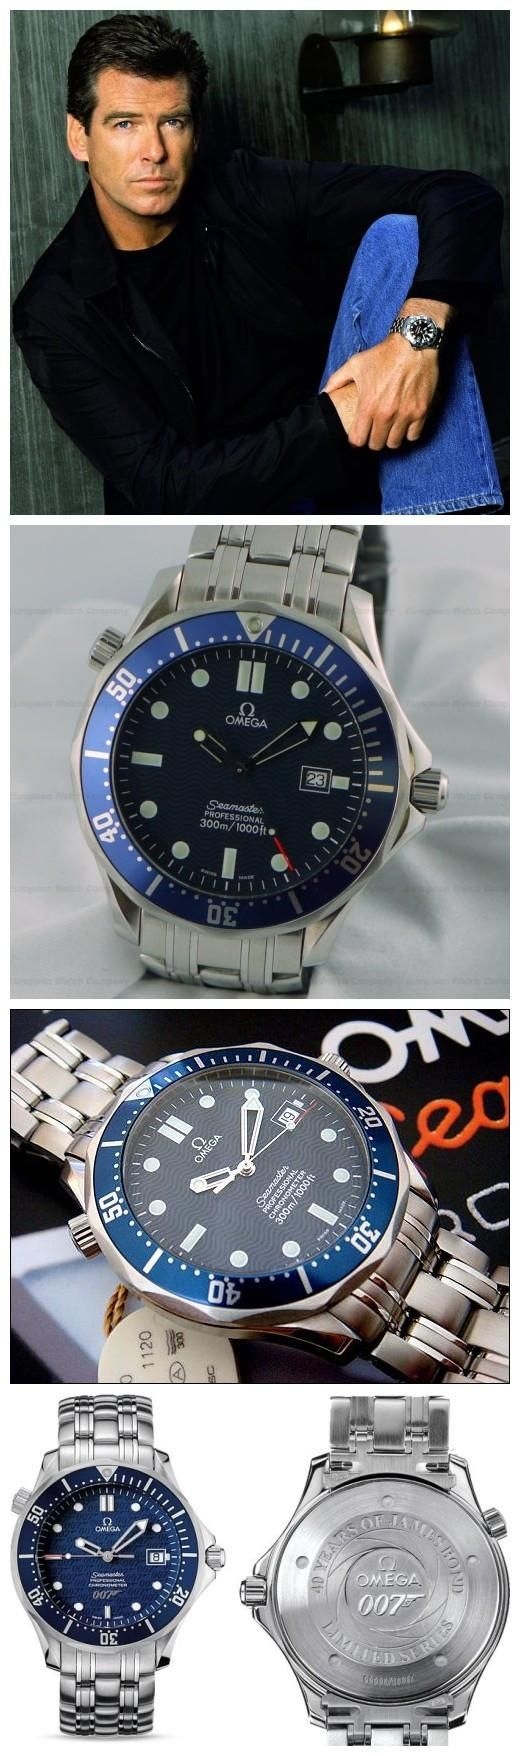 Omega Watches Of 007 James Bond - Replica Omega Guide #007watch #giftidea #menswatch